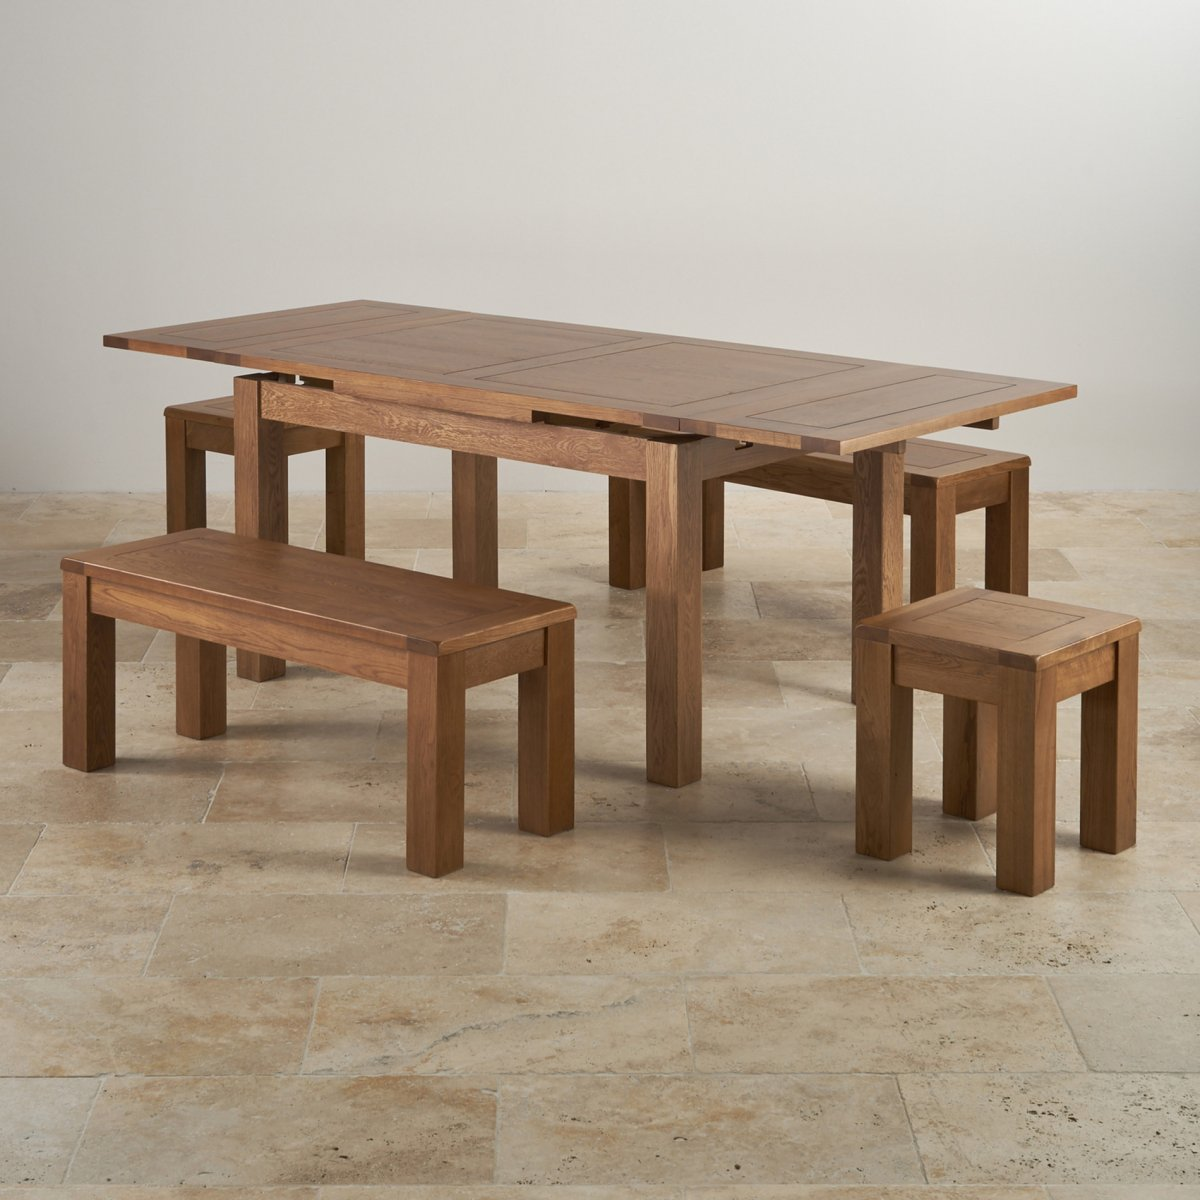 6 Ft Square Dining Table Rustic Oak Extending Dining Table 43 2 Benches And 2 Stools